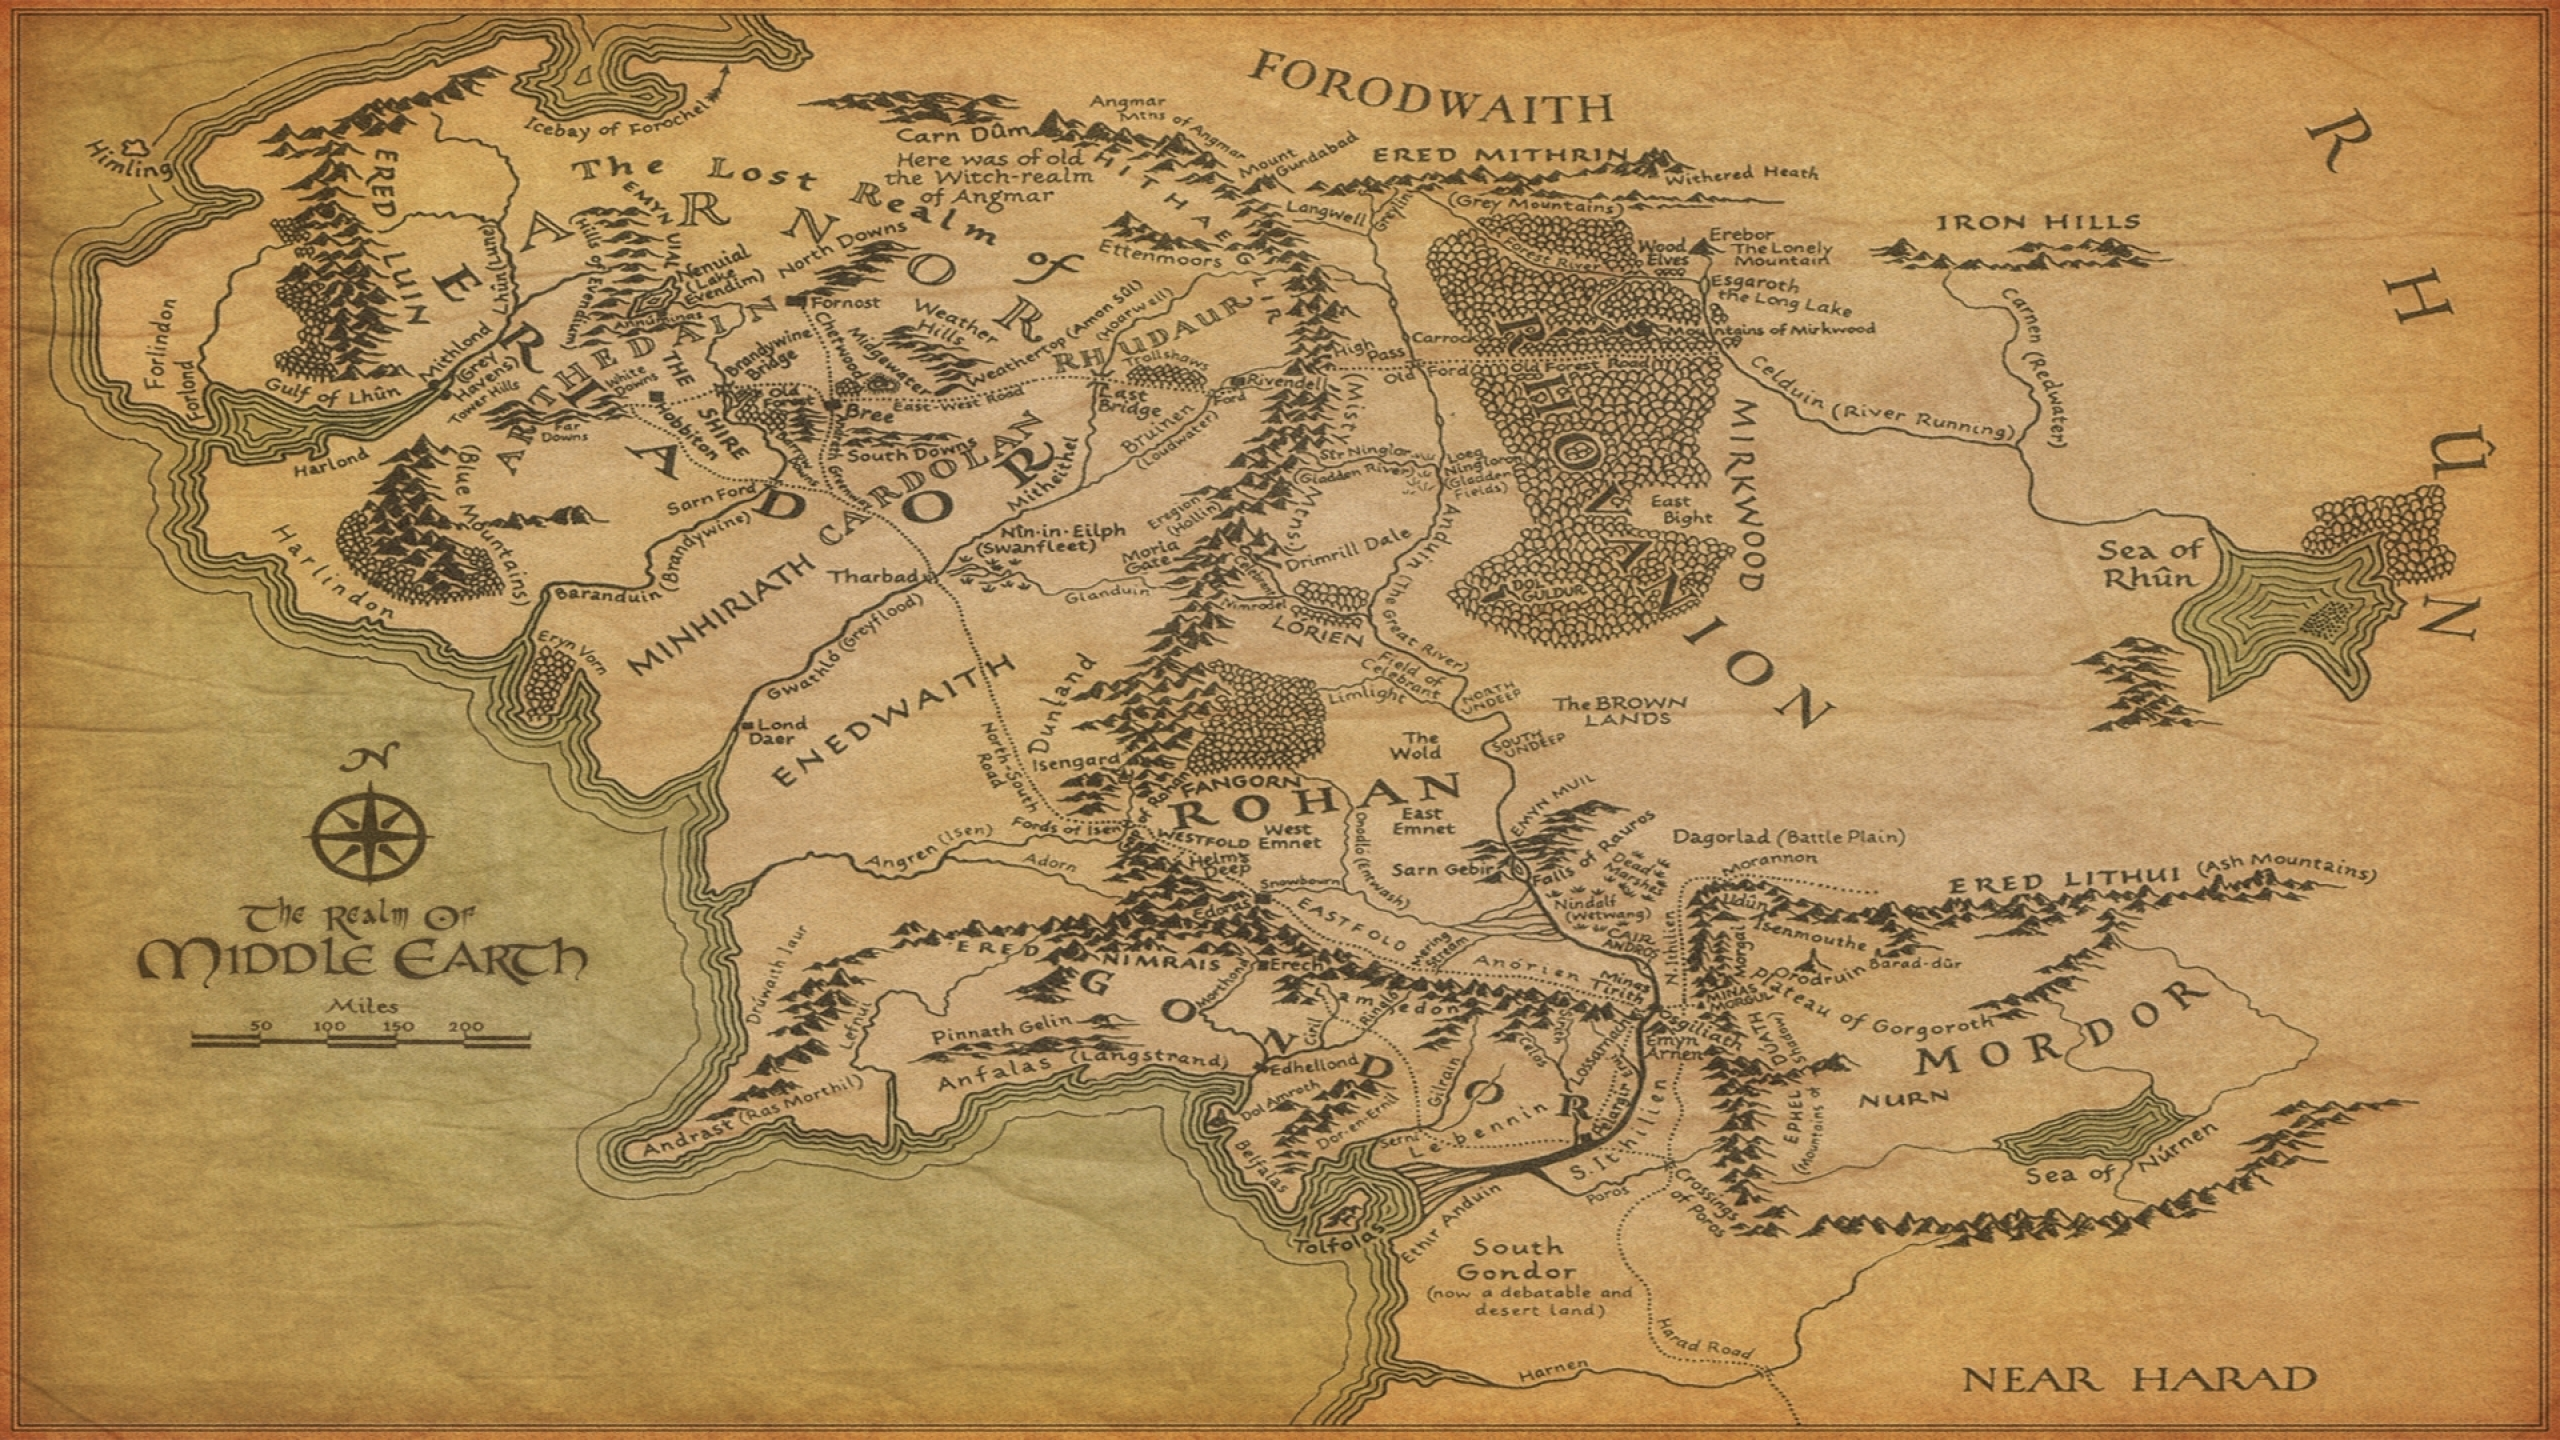 lord of the rings maps middleearth 1920x1080 wallpaper Best Wallpapers 2560x1440